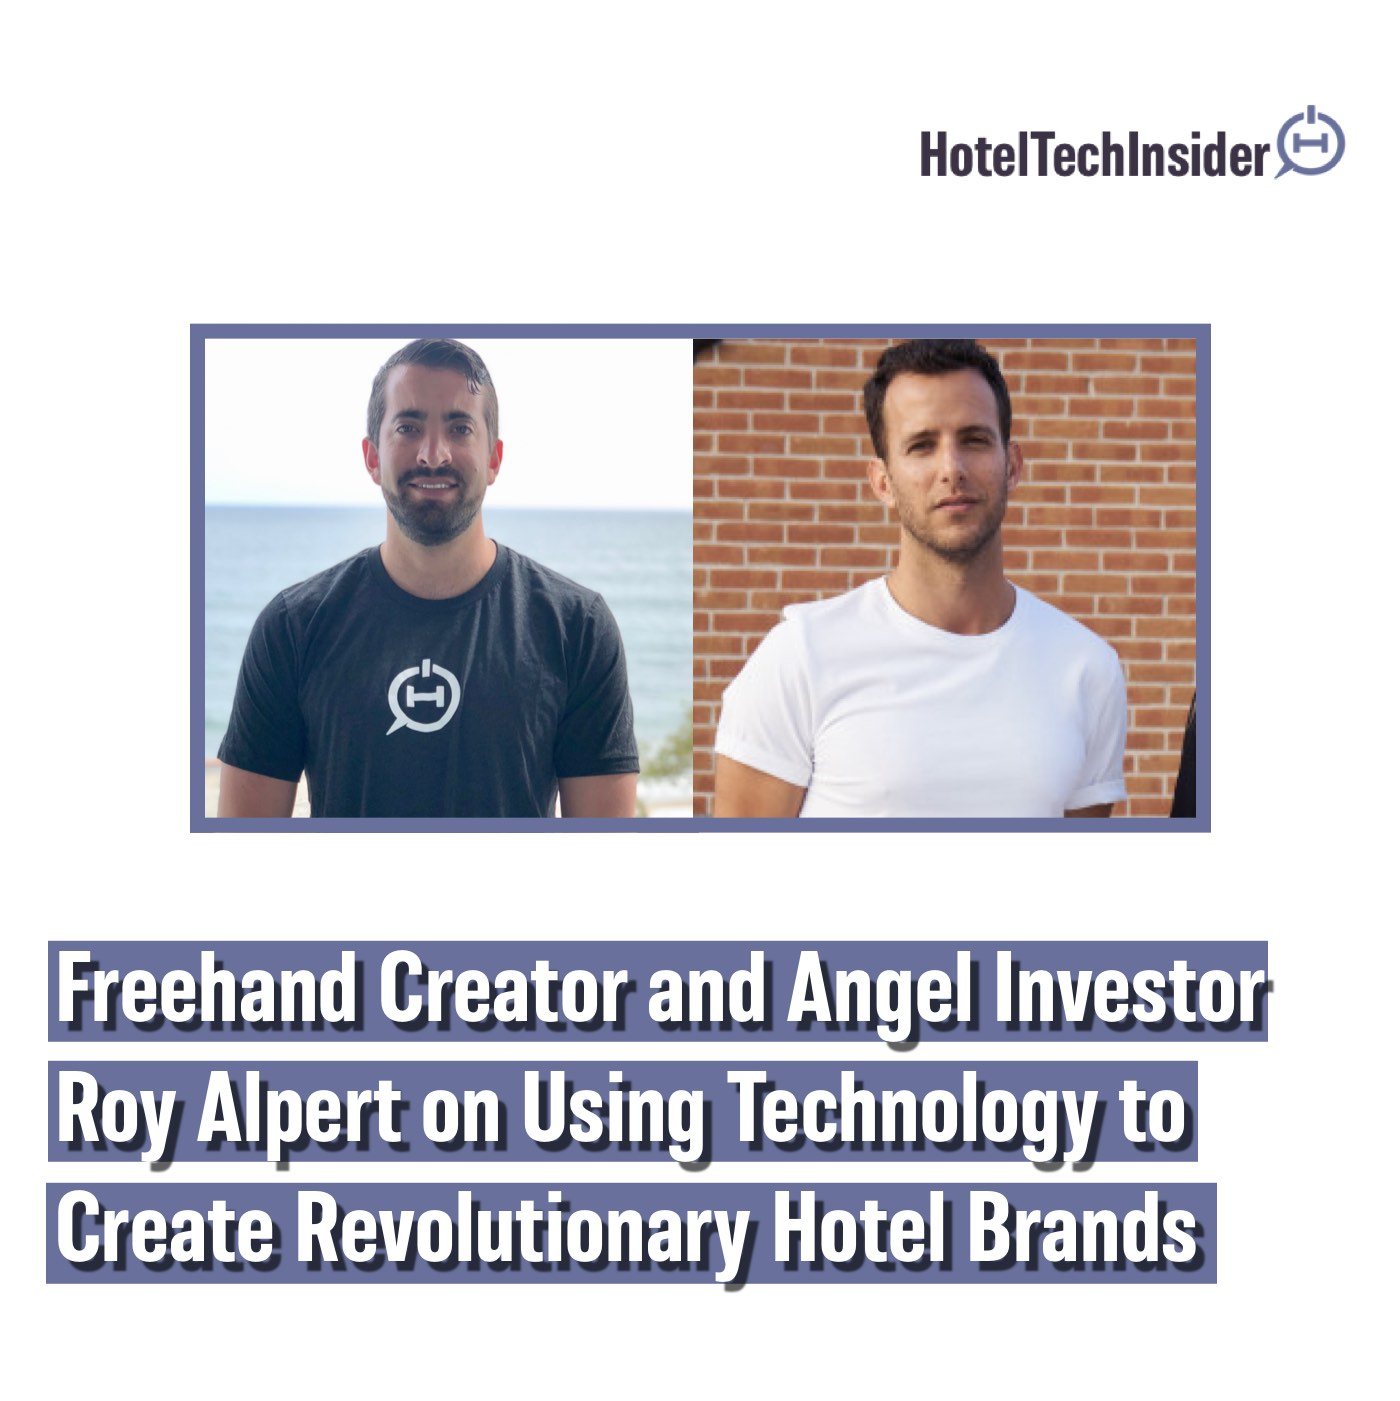 Freehand Creator and Angel Investor Roy Alpert on Using Technology to Create Revolutionary Hotel Brands